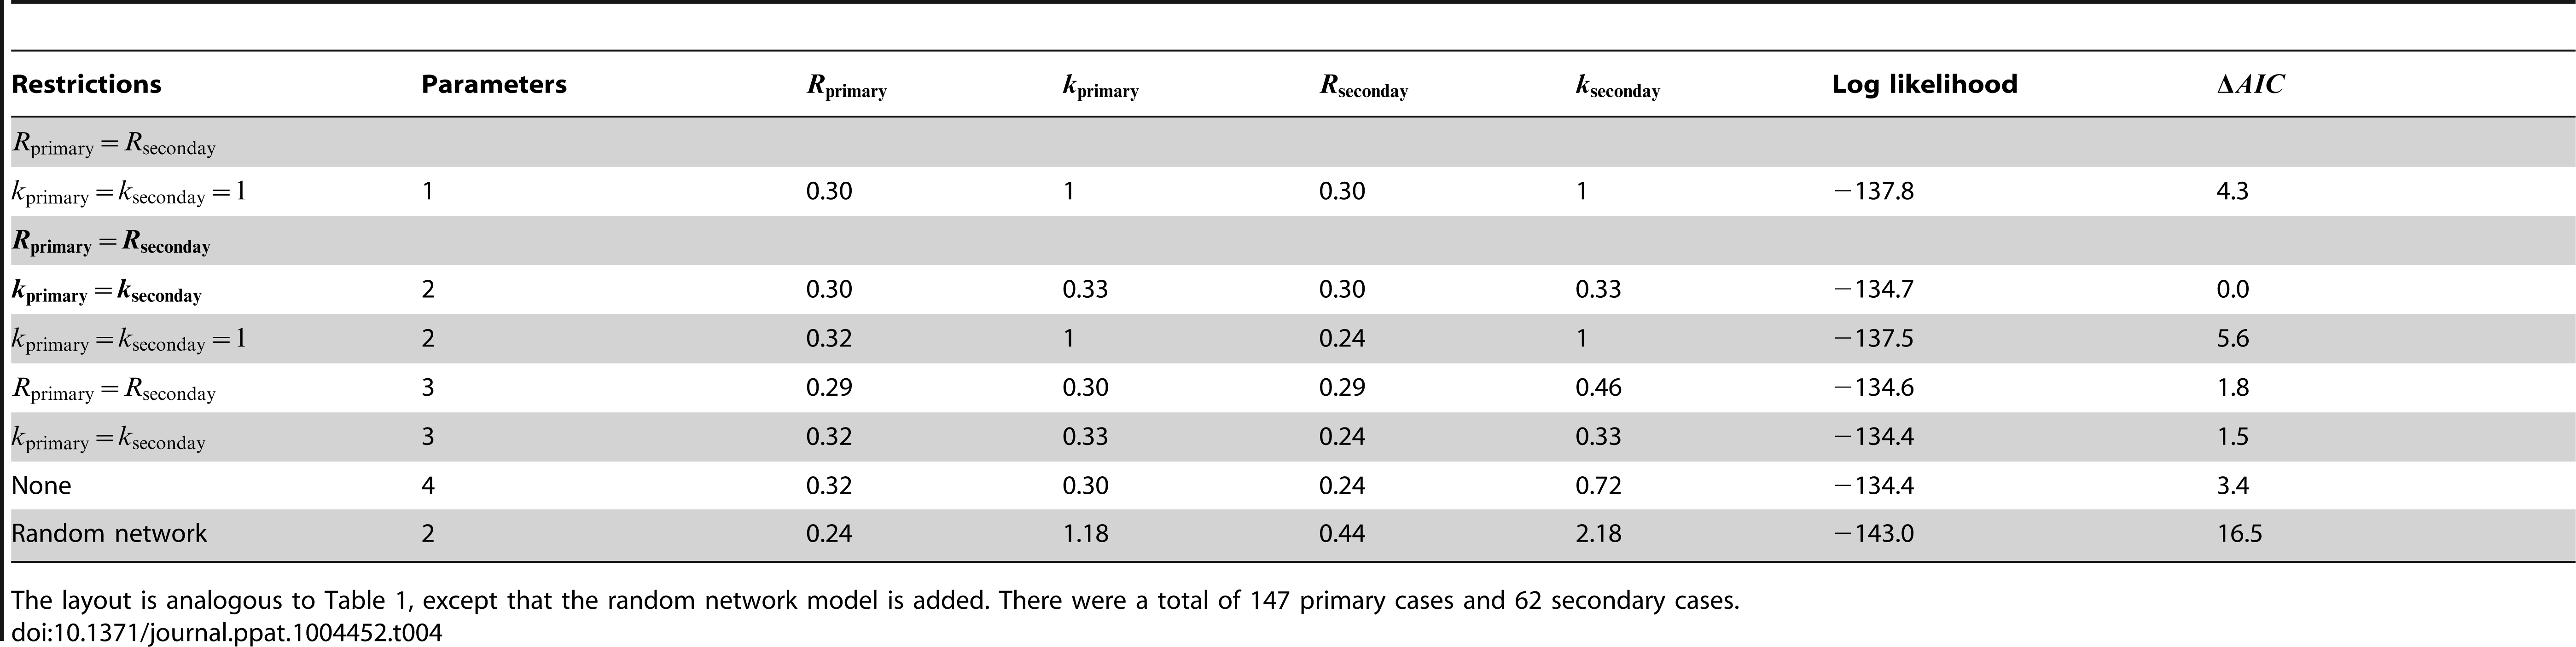 Inference results for comparing the transmissibility of primary and secondary cases for human monkeypox in the Democratic Republic of Congo, 1981–1984.